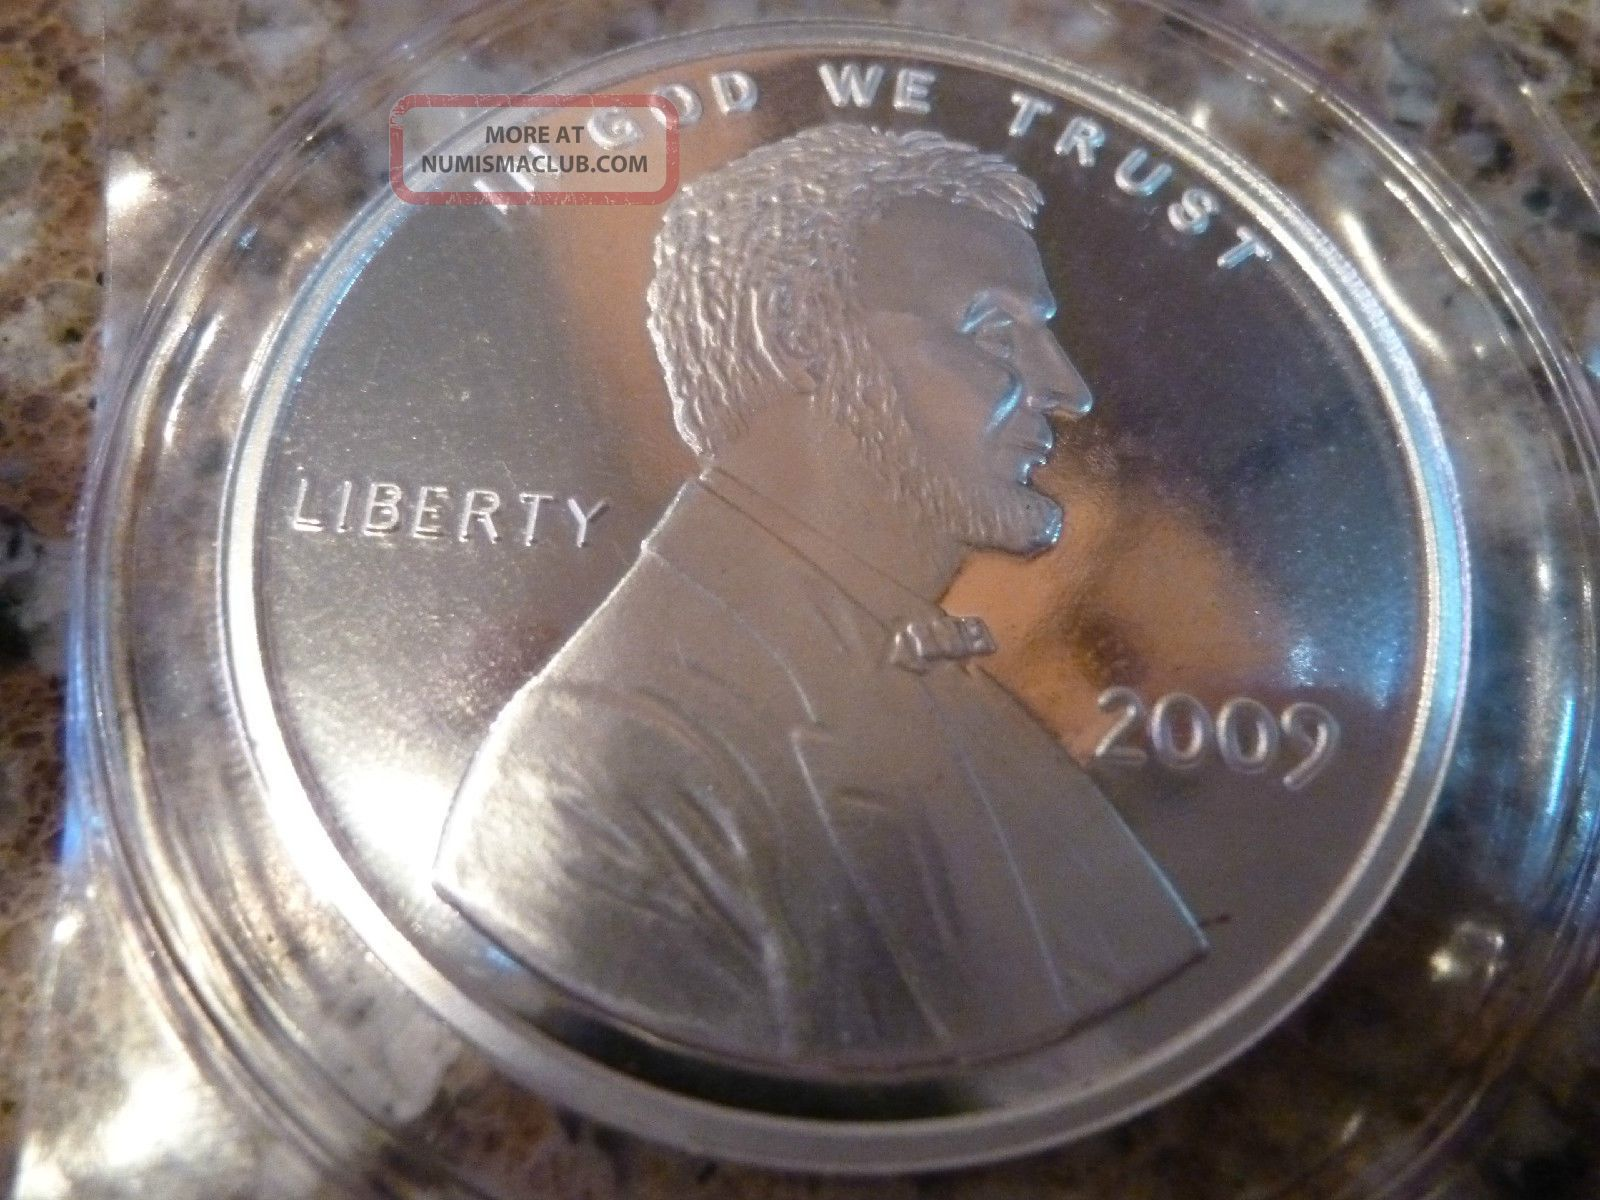 2009 1 Oz 999 Silver Medallion Or Token Coin Lincoln One